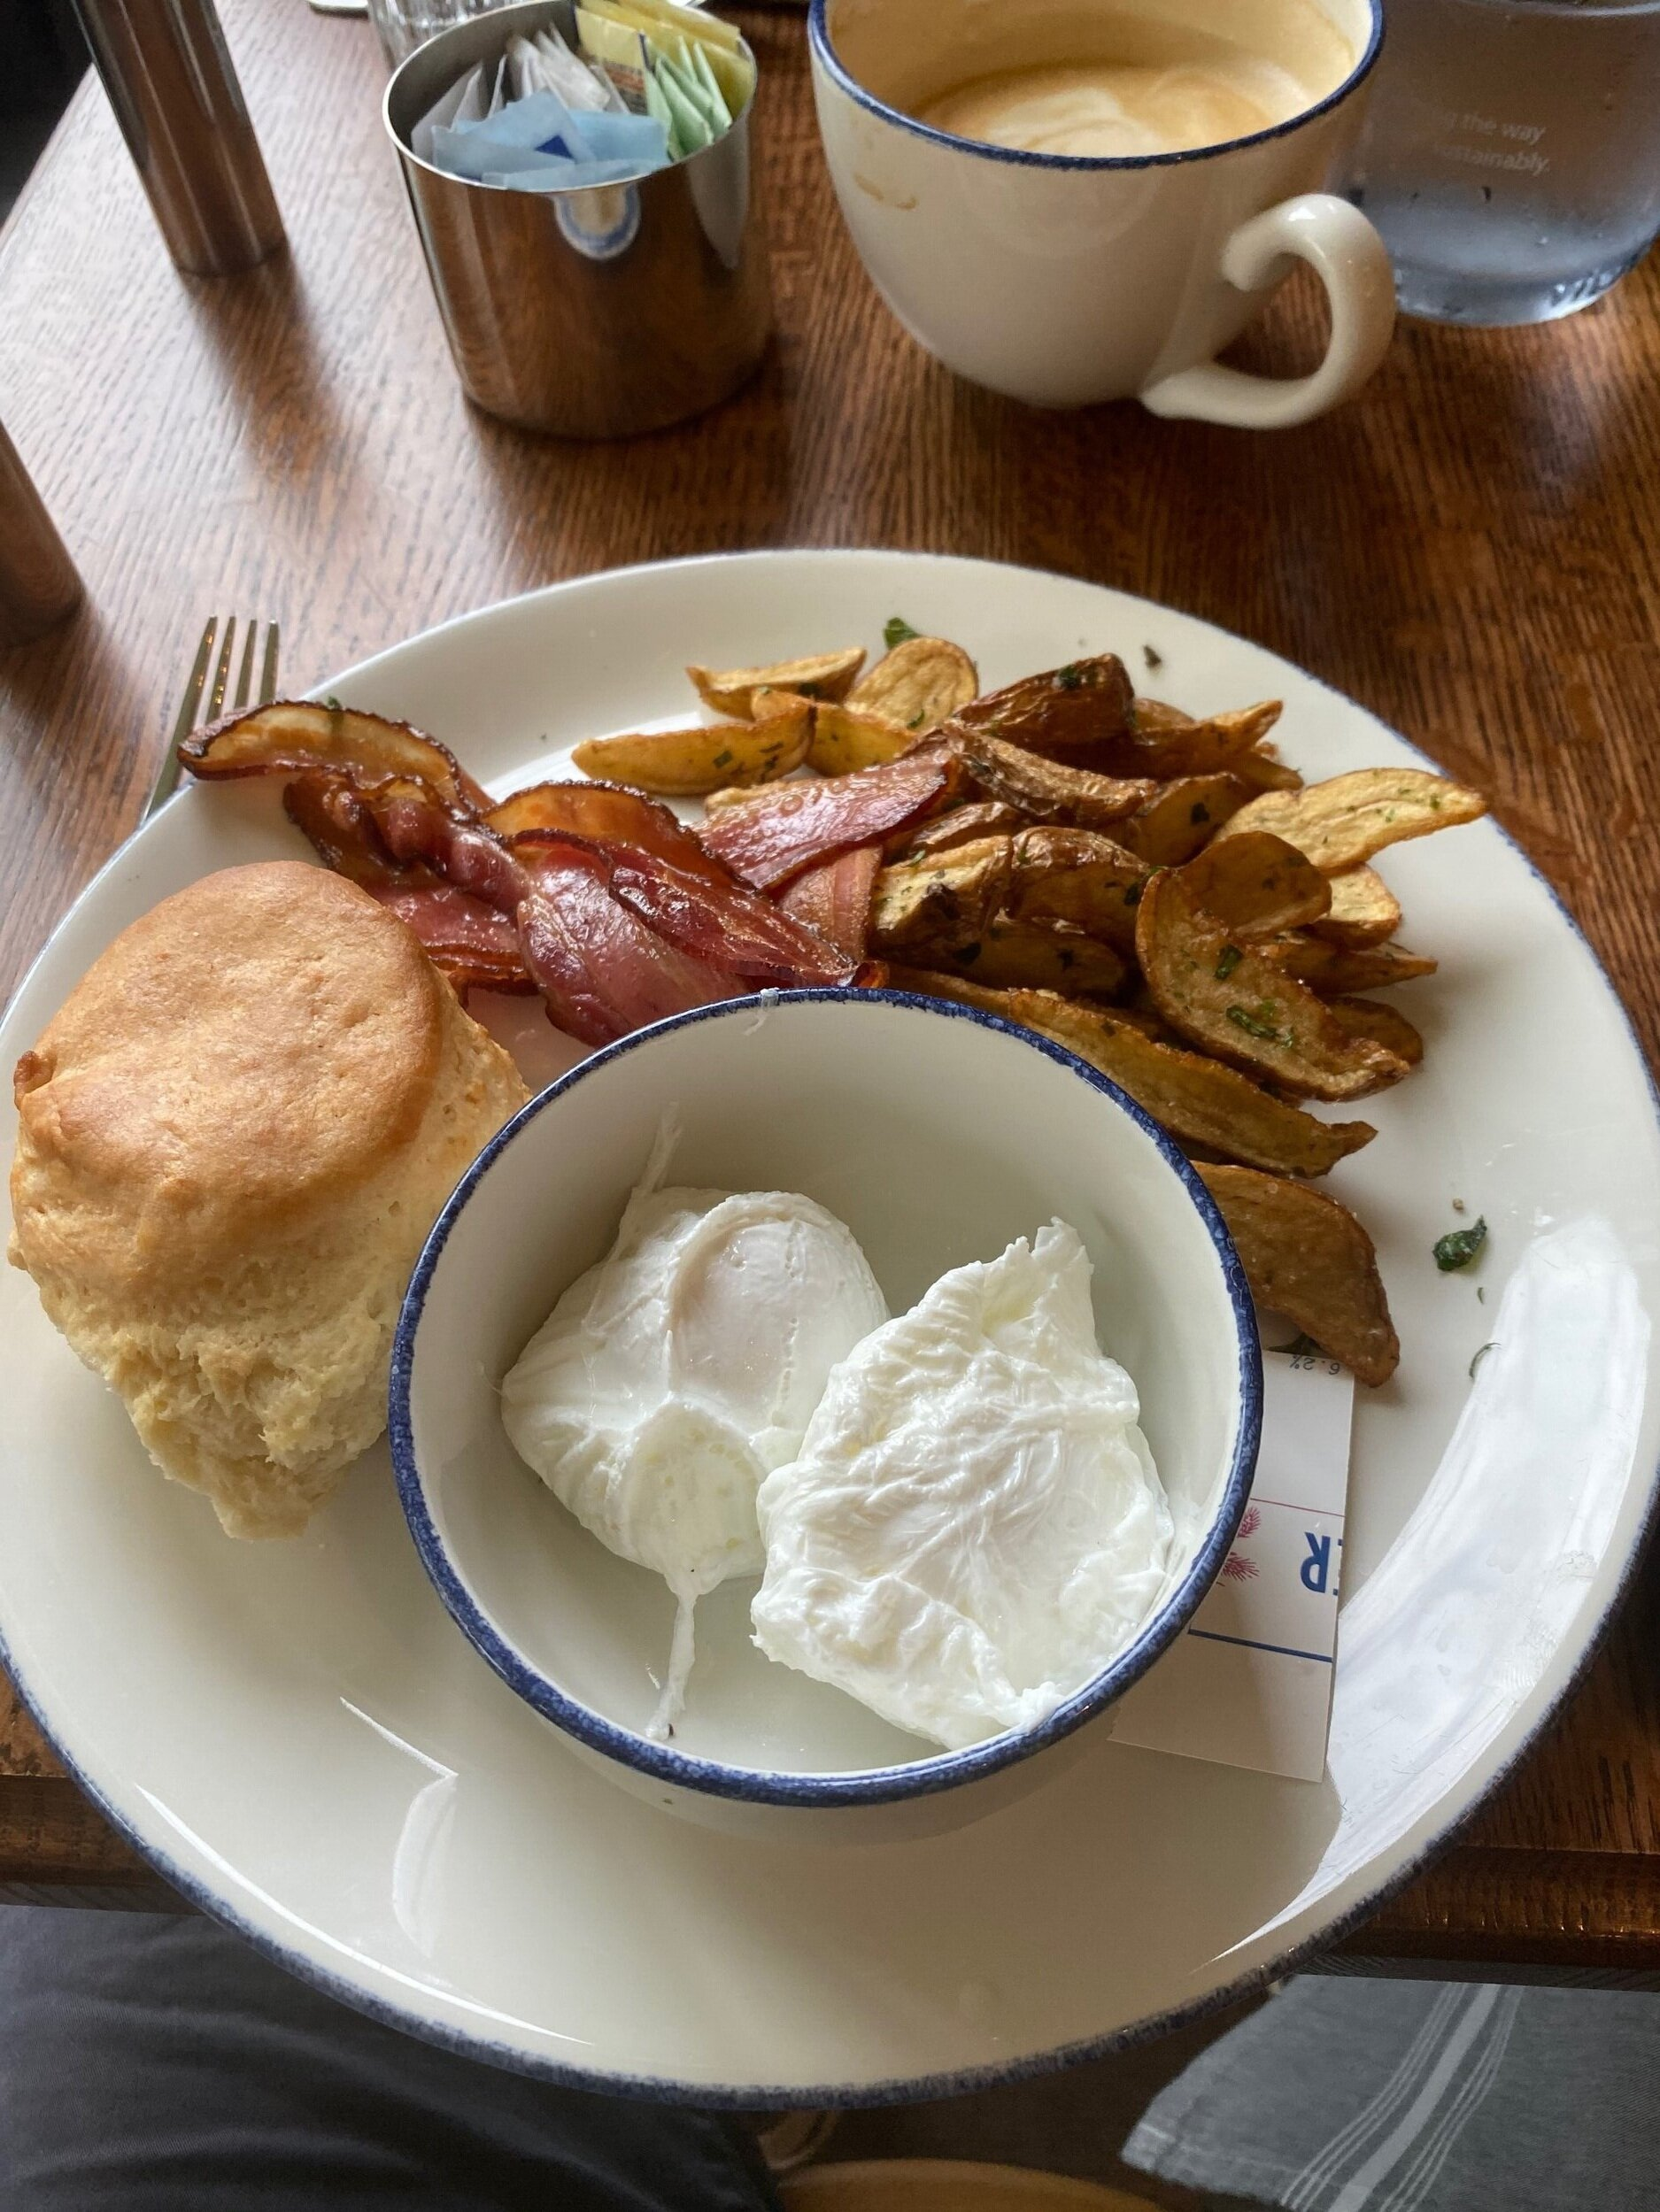 The biscuit and crispy, smoked bacon were a highlight.